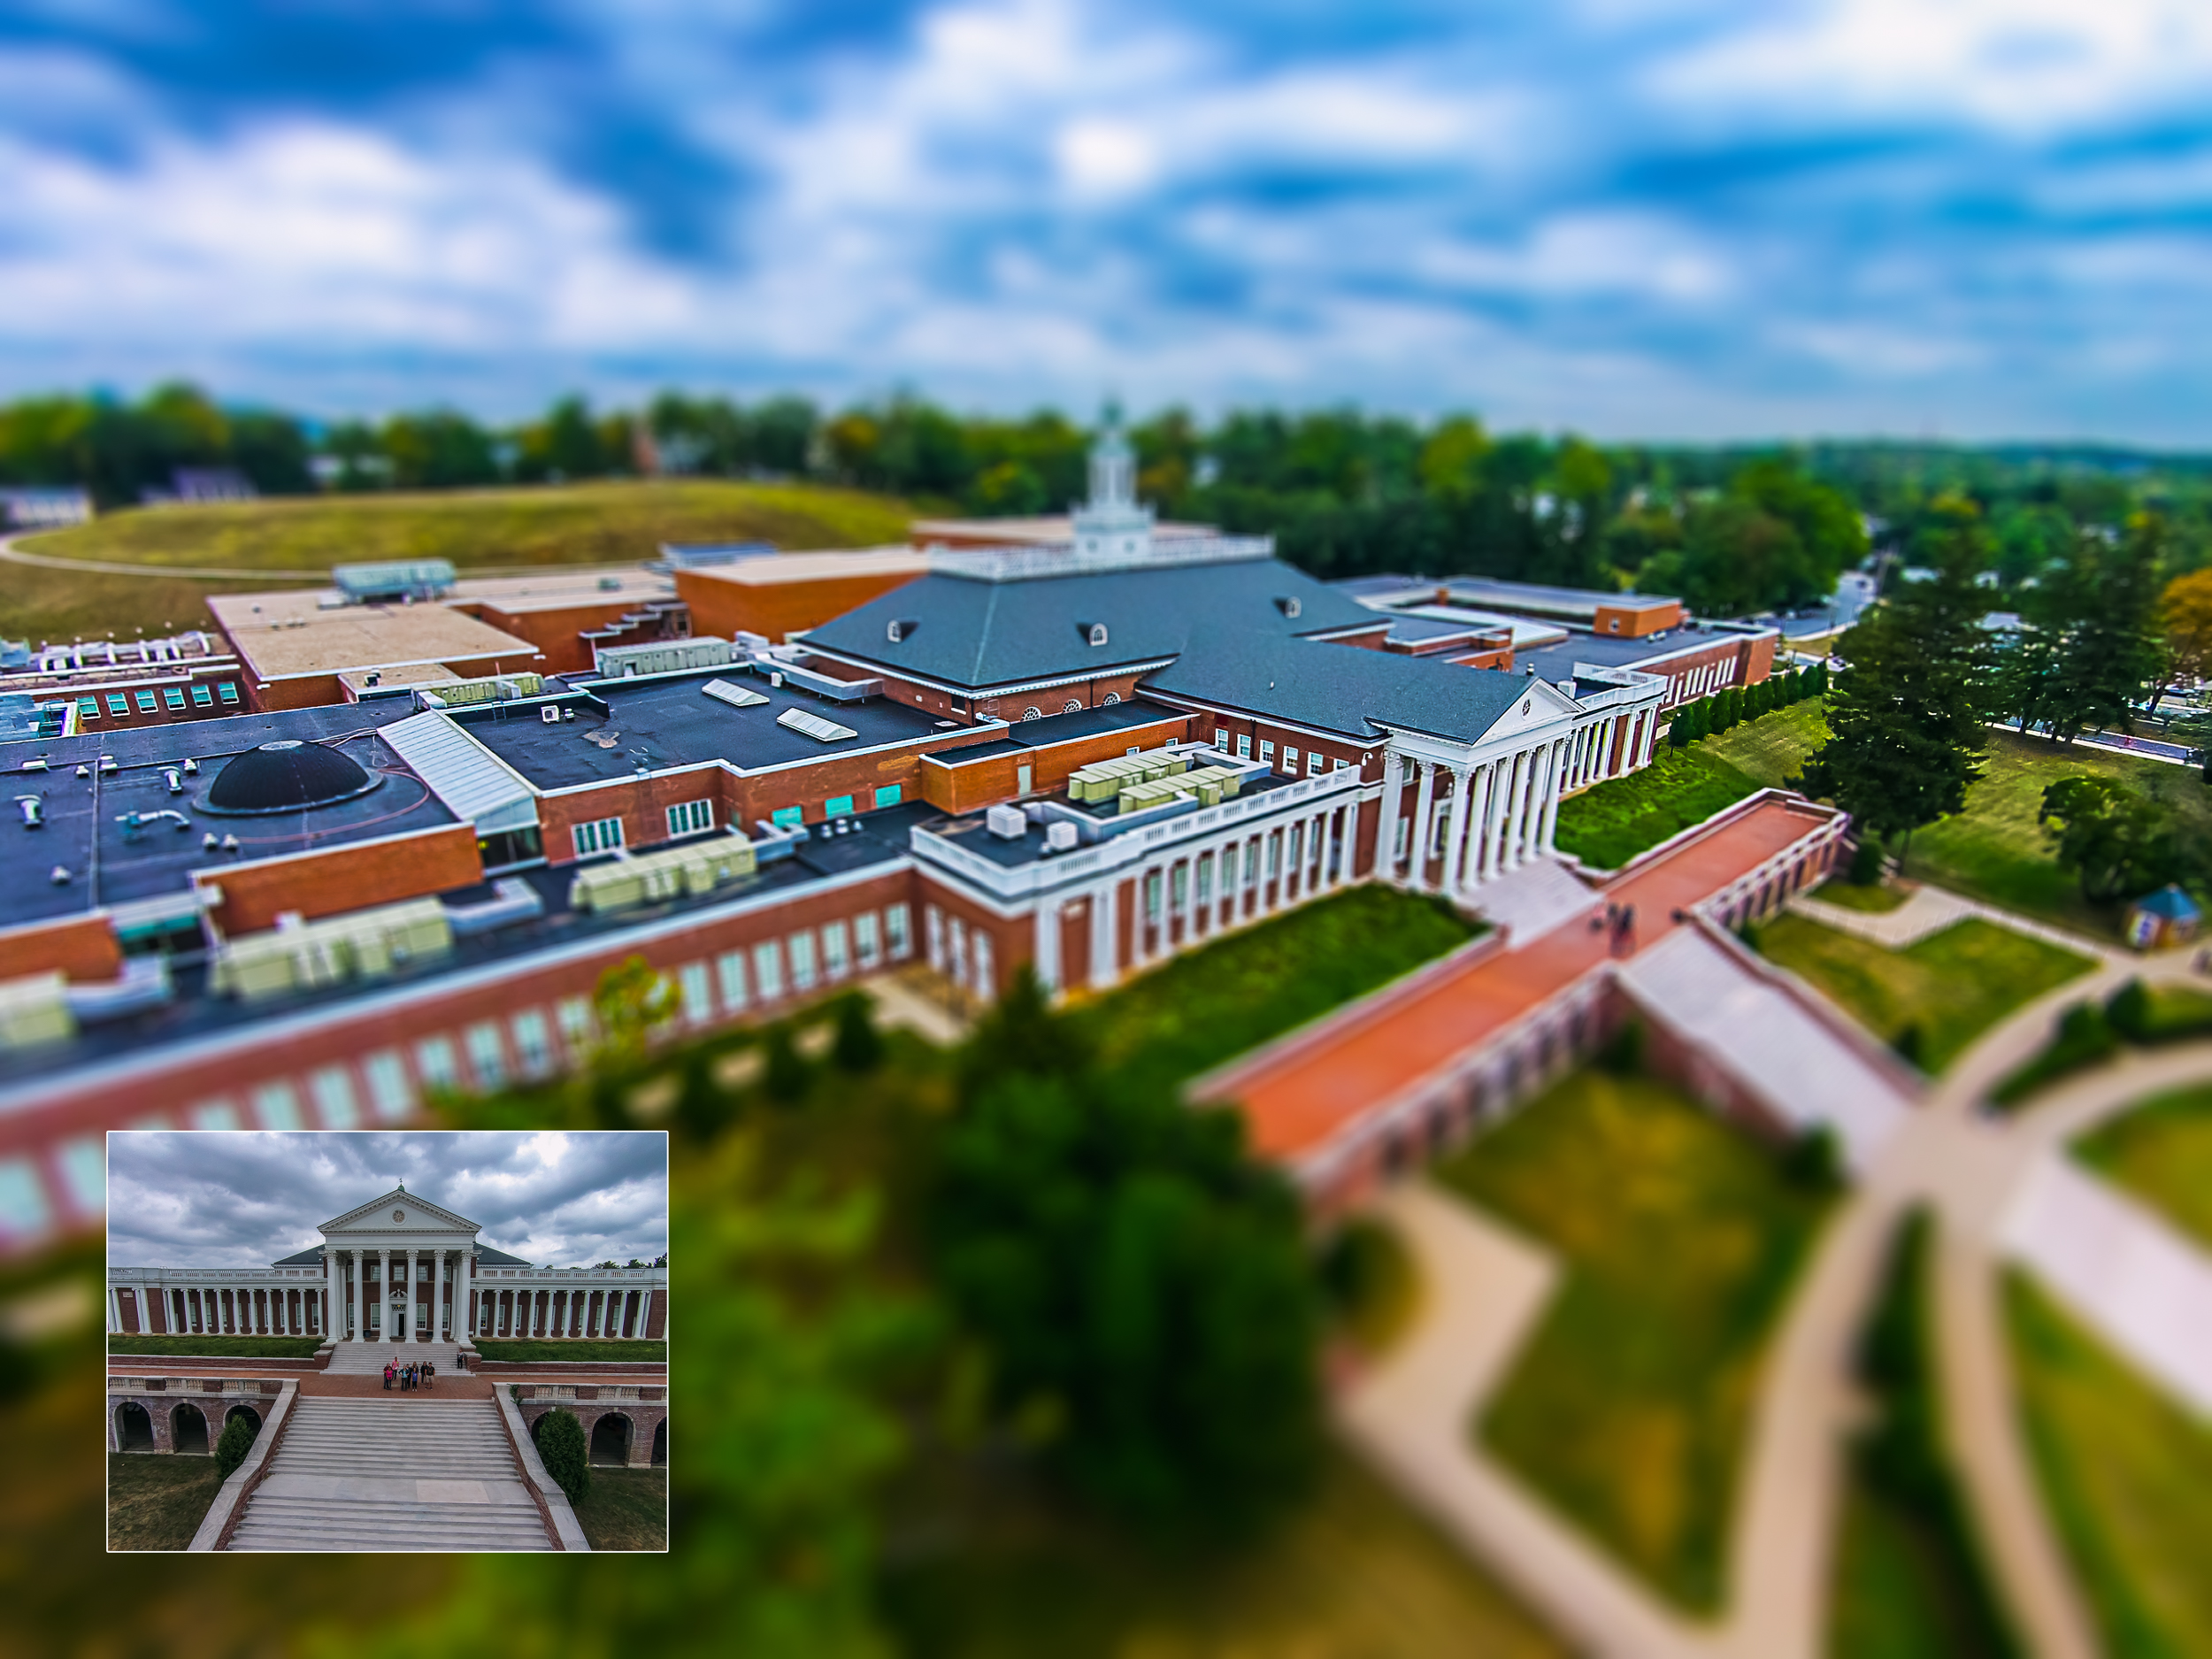 I took this group through the workflow of capturing and aerial image and editing it with a miniature effect.